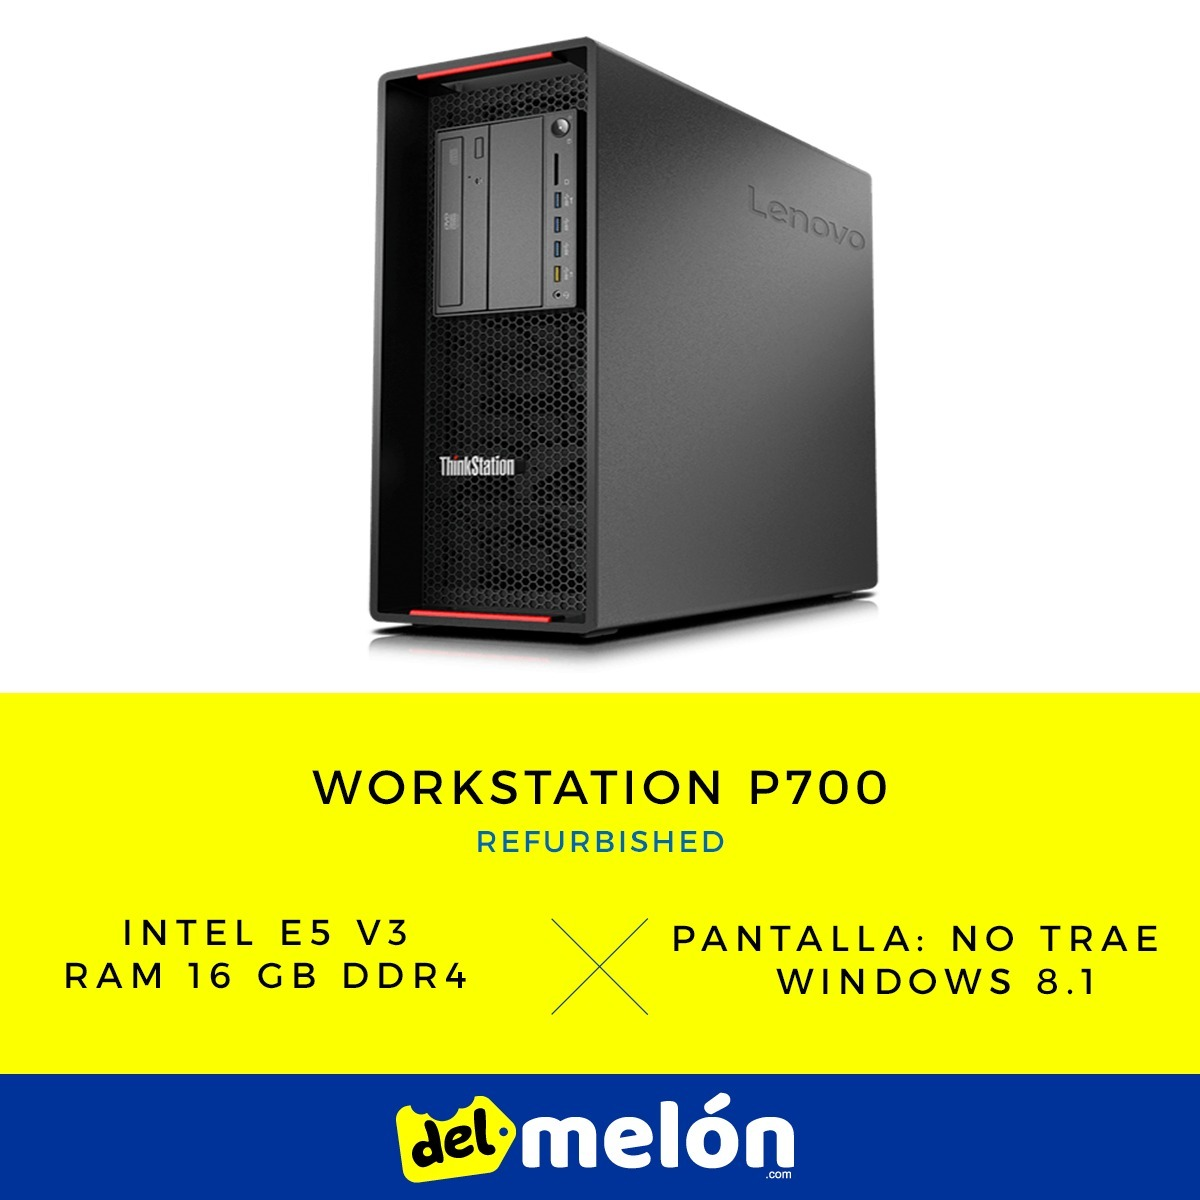 LENOVO THINKSTATION P700 DRIVER FREE